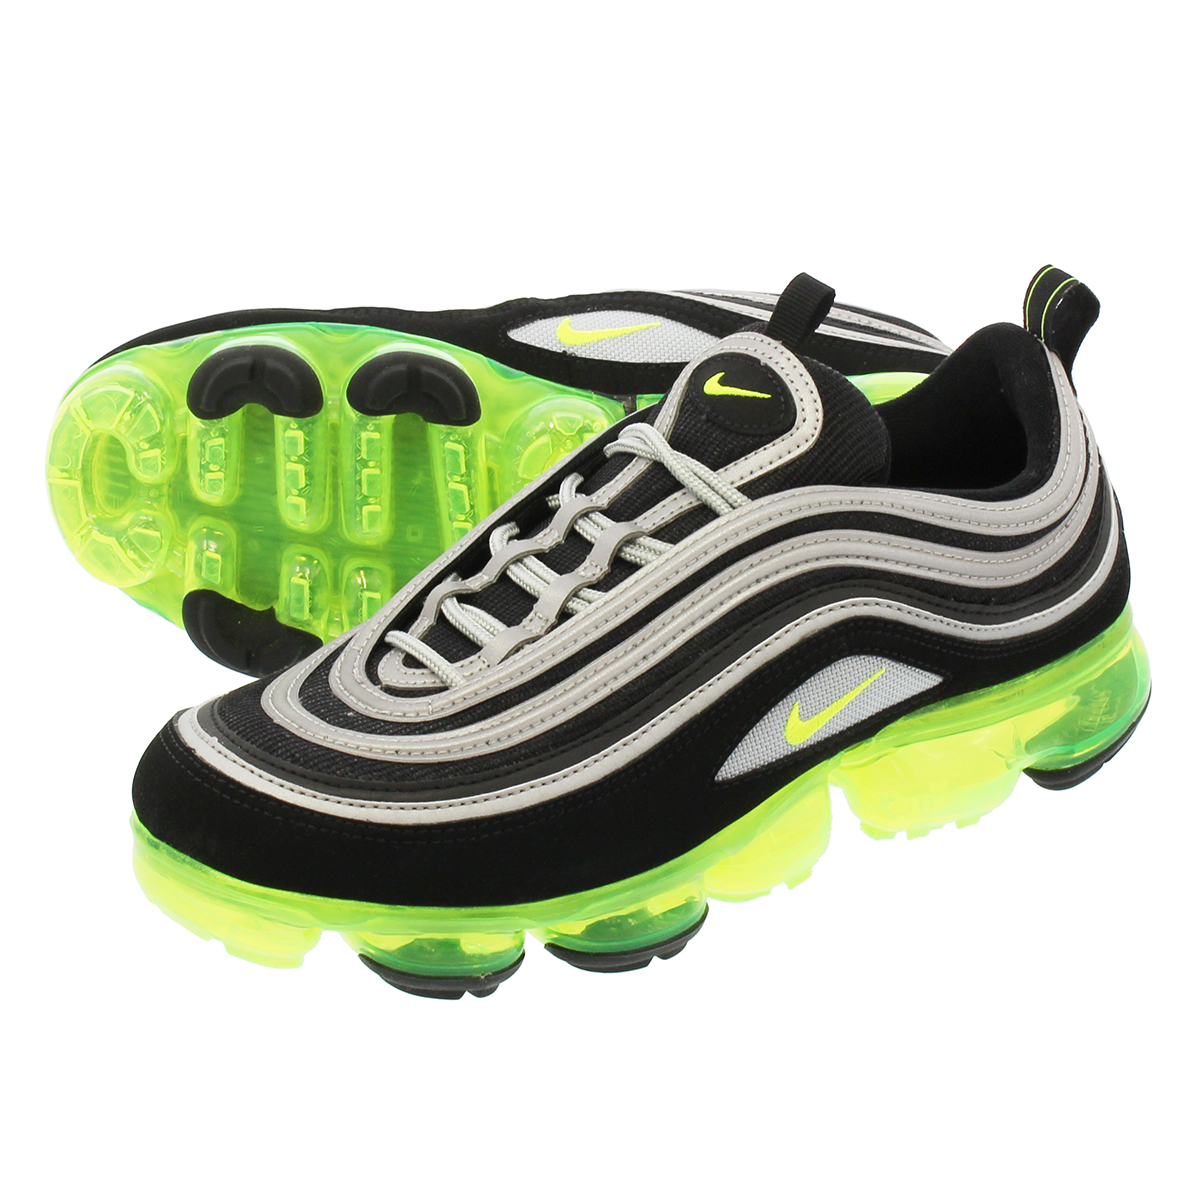 official photos e70d4 2bdff NIKE AIR VAPORMAX 97 Nike air vapor max 97 BLACK/VOLT/METALLIC SILVER/WHITE